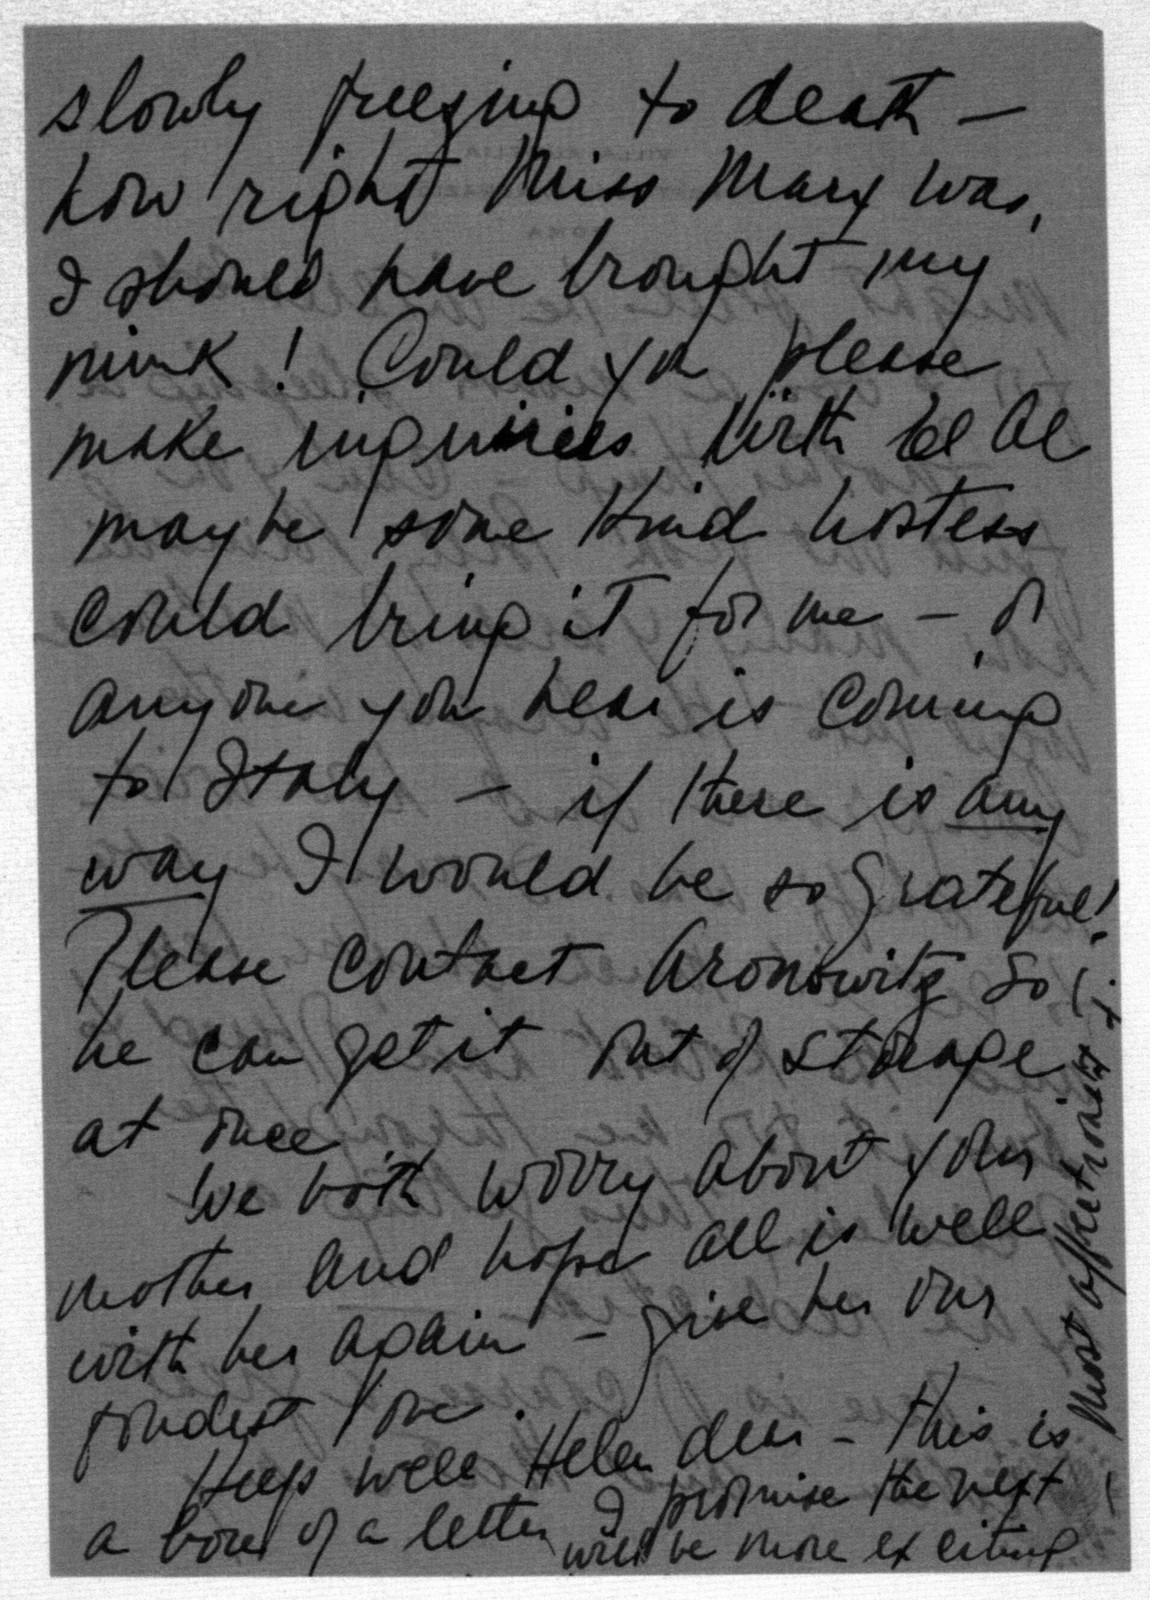 Letter from Felicia Bernstein to Helen Coates, November 27, 1953